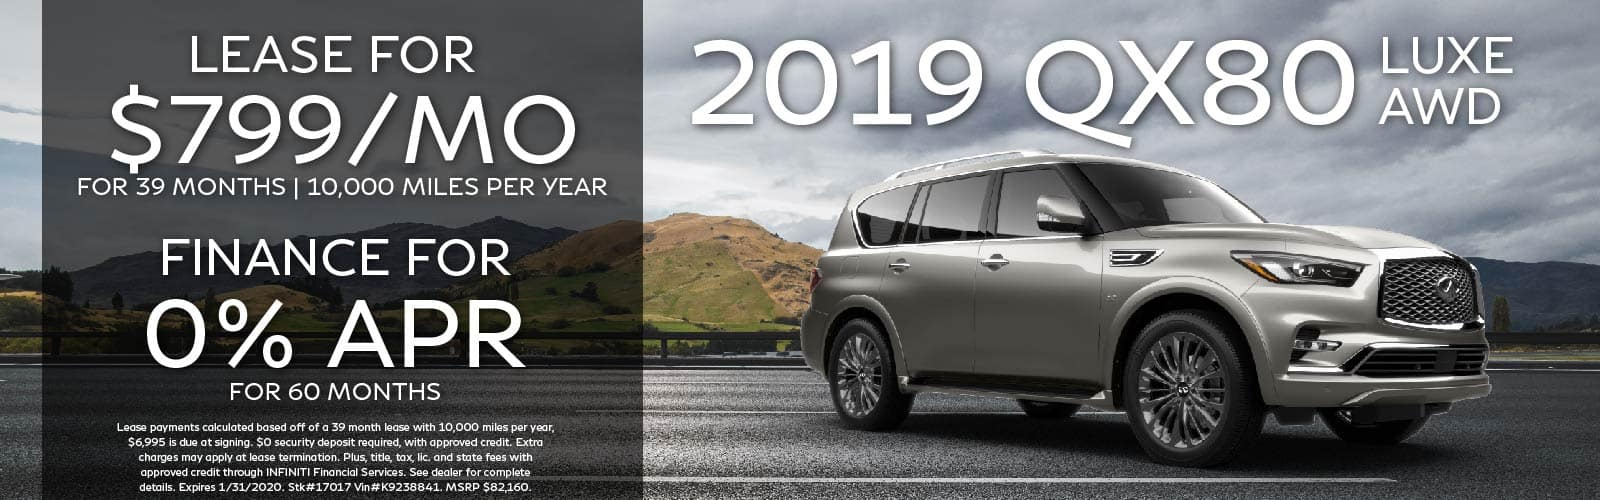 2019 QX80 offer for $799 per month. finance for 0% APR. See retailer for complete details.